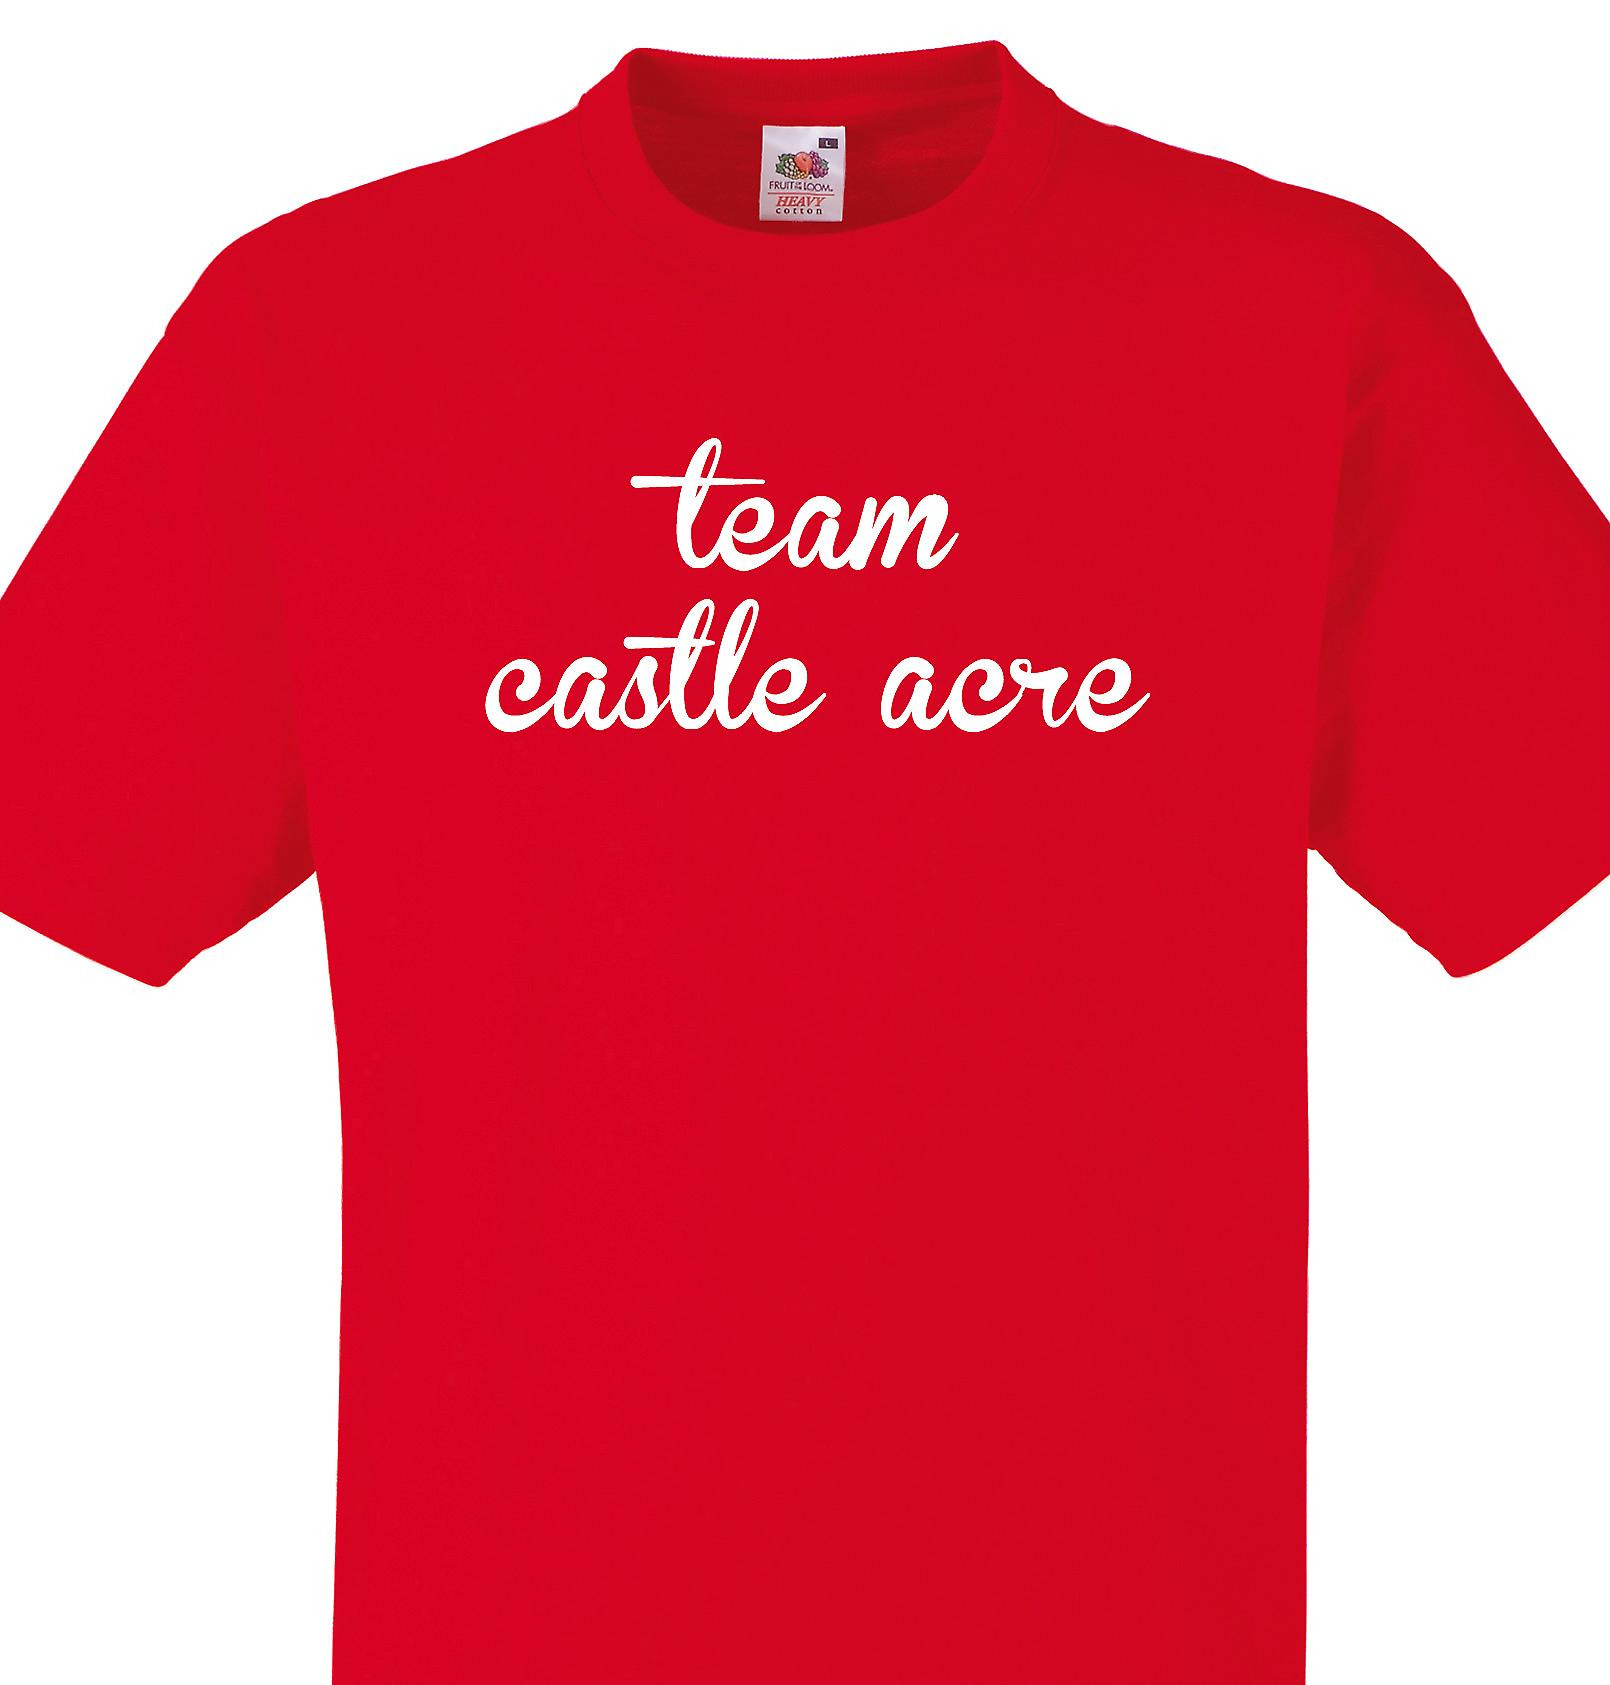 Team Castle acre Red T shirt